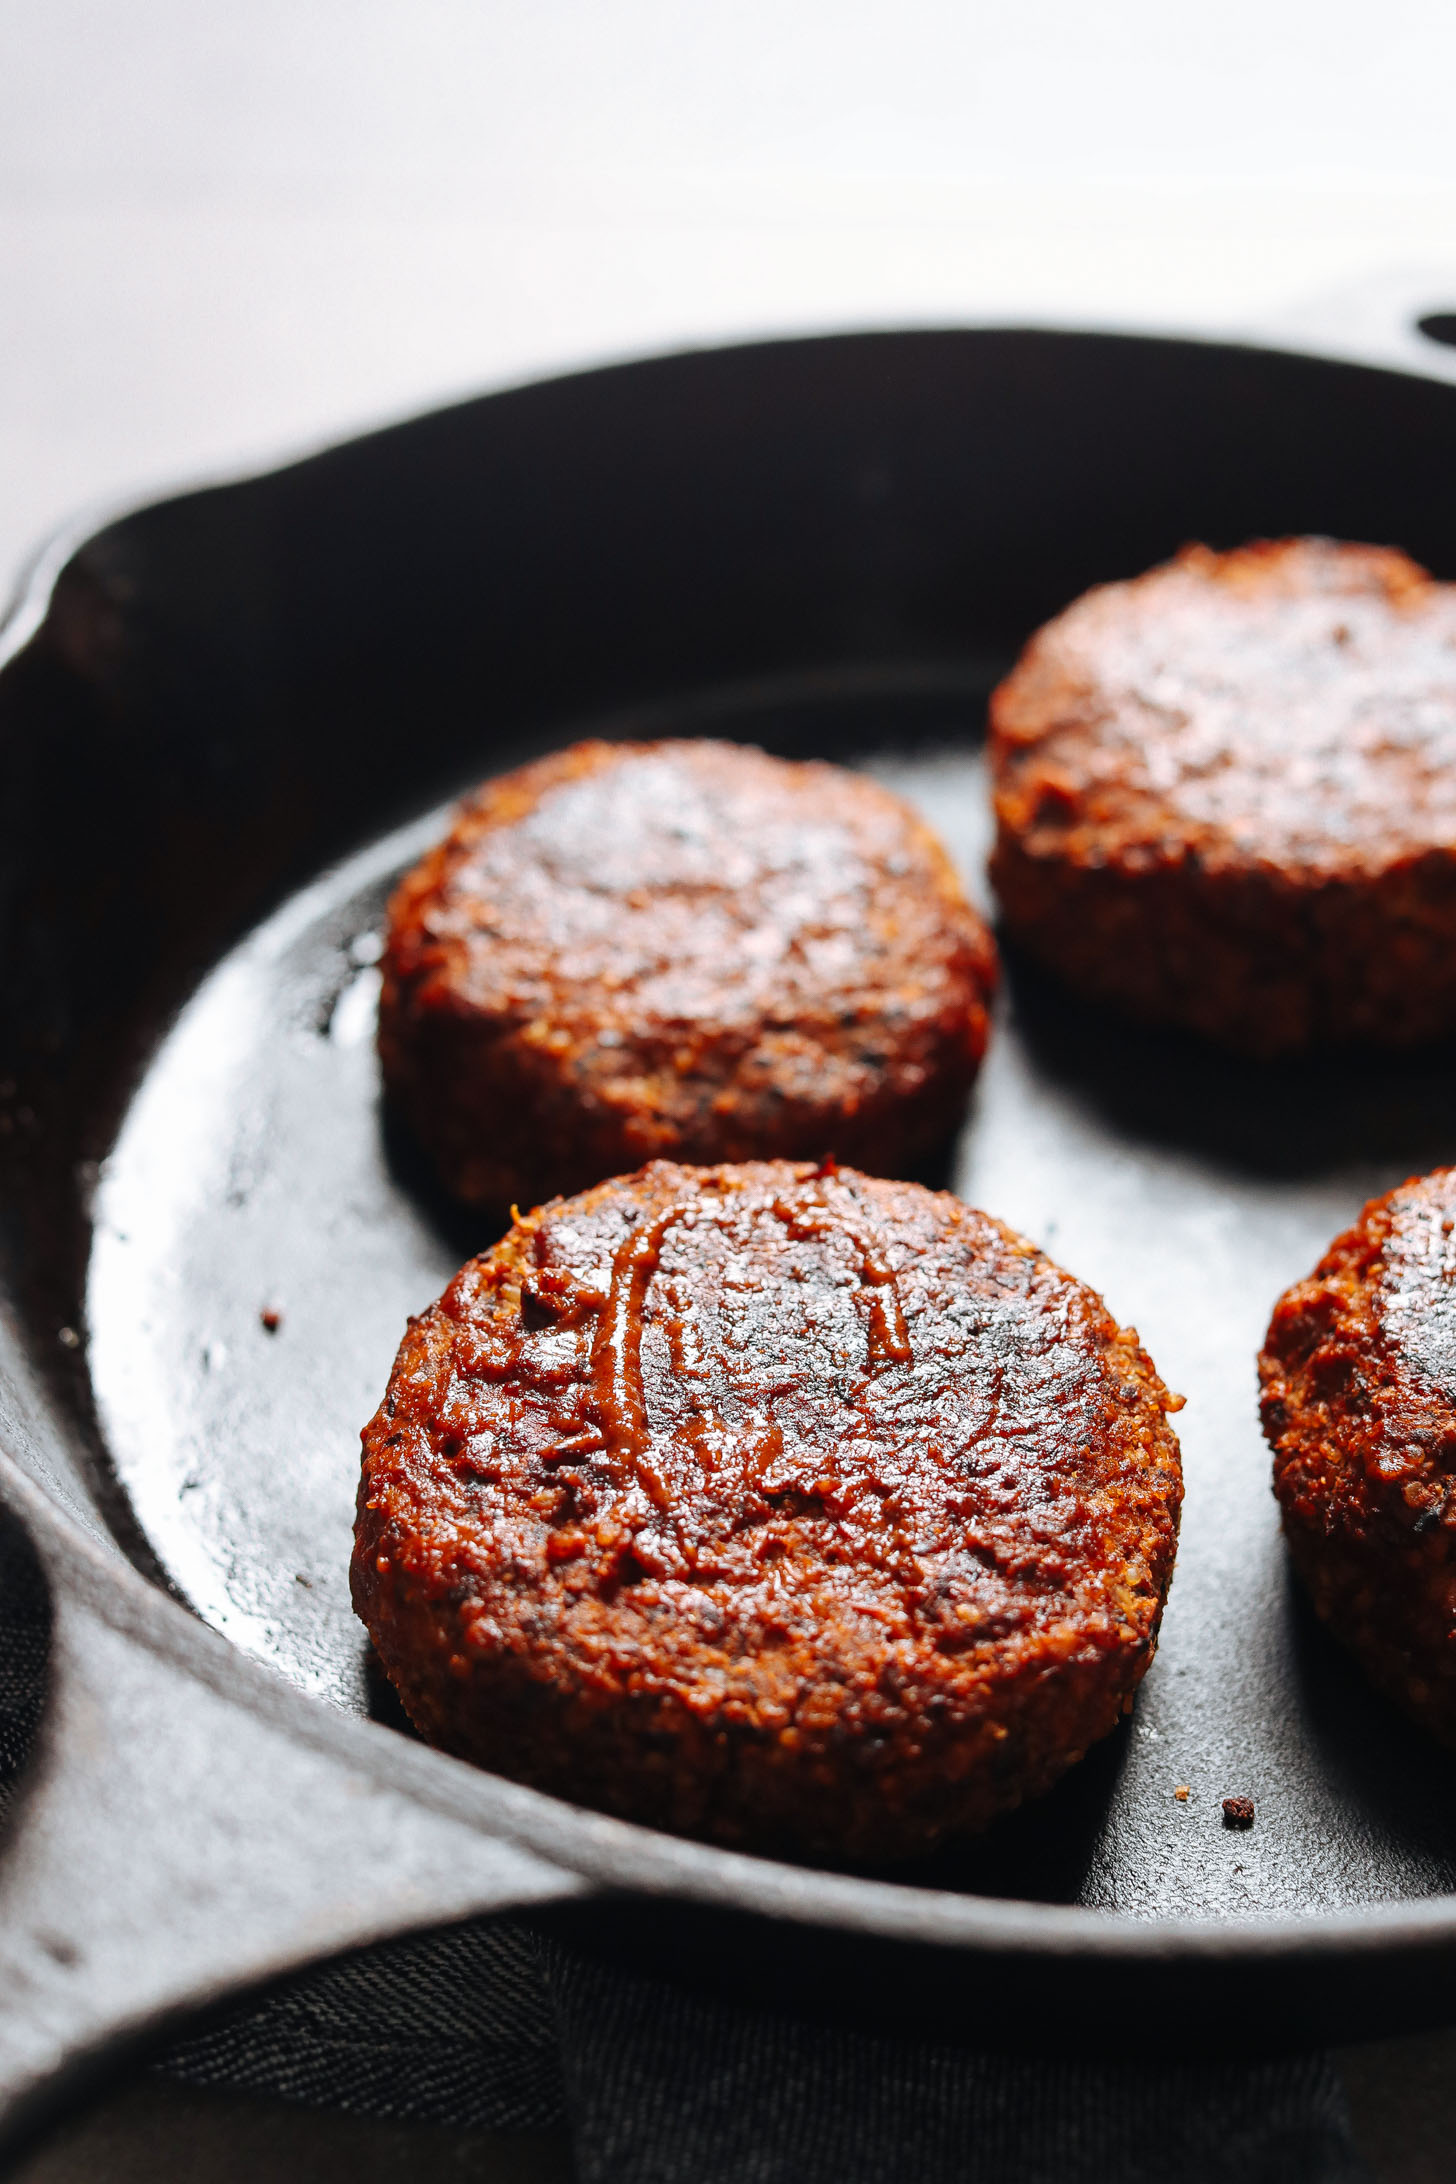 Gluten-free and vegan BBQ Black Bean Burger patties cooking in a skillet